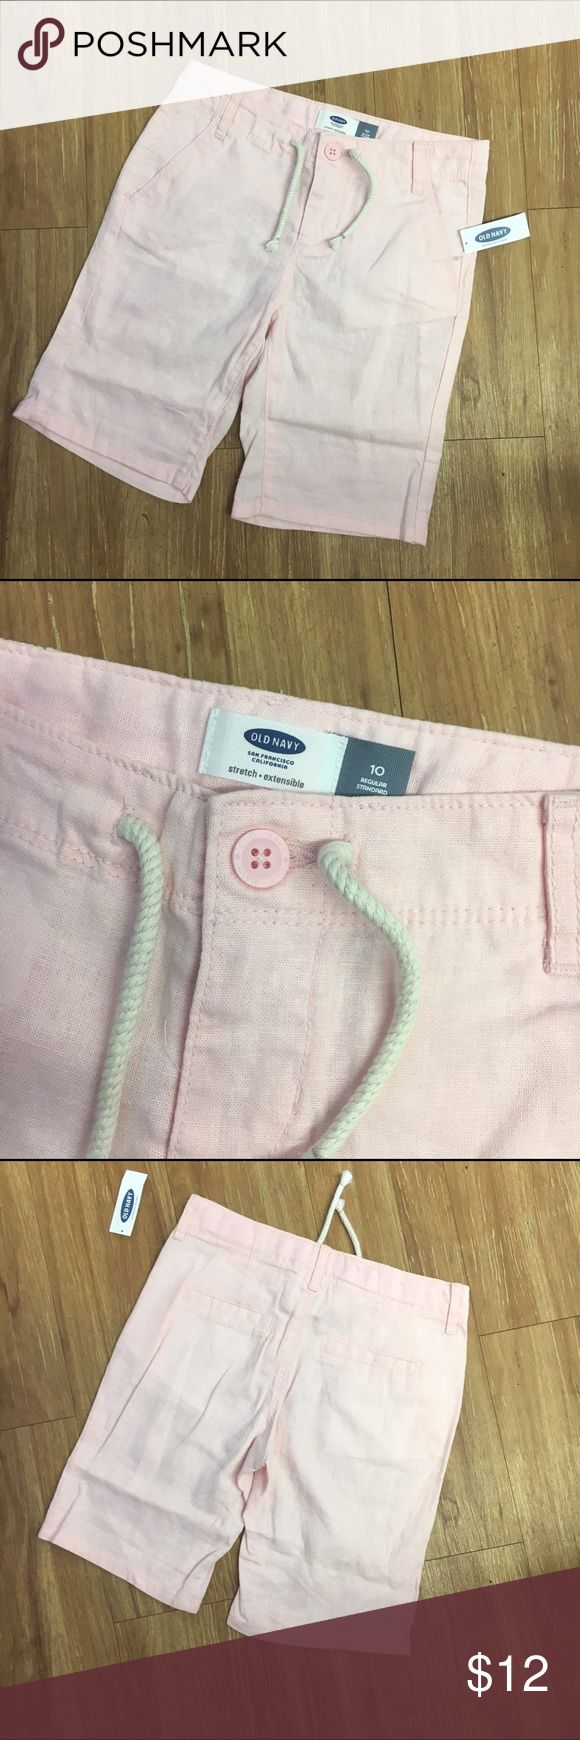 """NEW NWT Old Navy Linen Midi Shorts Pink Girls 10 NEW NWT Old Navy Linen Midi Shorts Pink Girls 10  Label says """"peach carnation"""" but these are freakin' pale pink.  LOL.  Belt loops, adjustable waist, nonfunctional drawstring.  Back pockets are faux but front pockets are functional.  #new #nwt #shorts #pink #palepink #midi #peachcarnation #linen #linenshorts #preppy #modest #longerlength Old Navy Bottoms Shorts"""